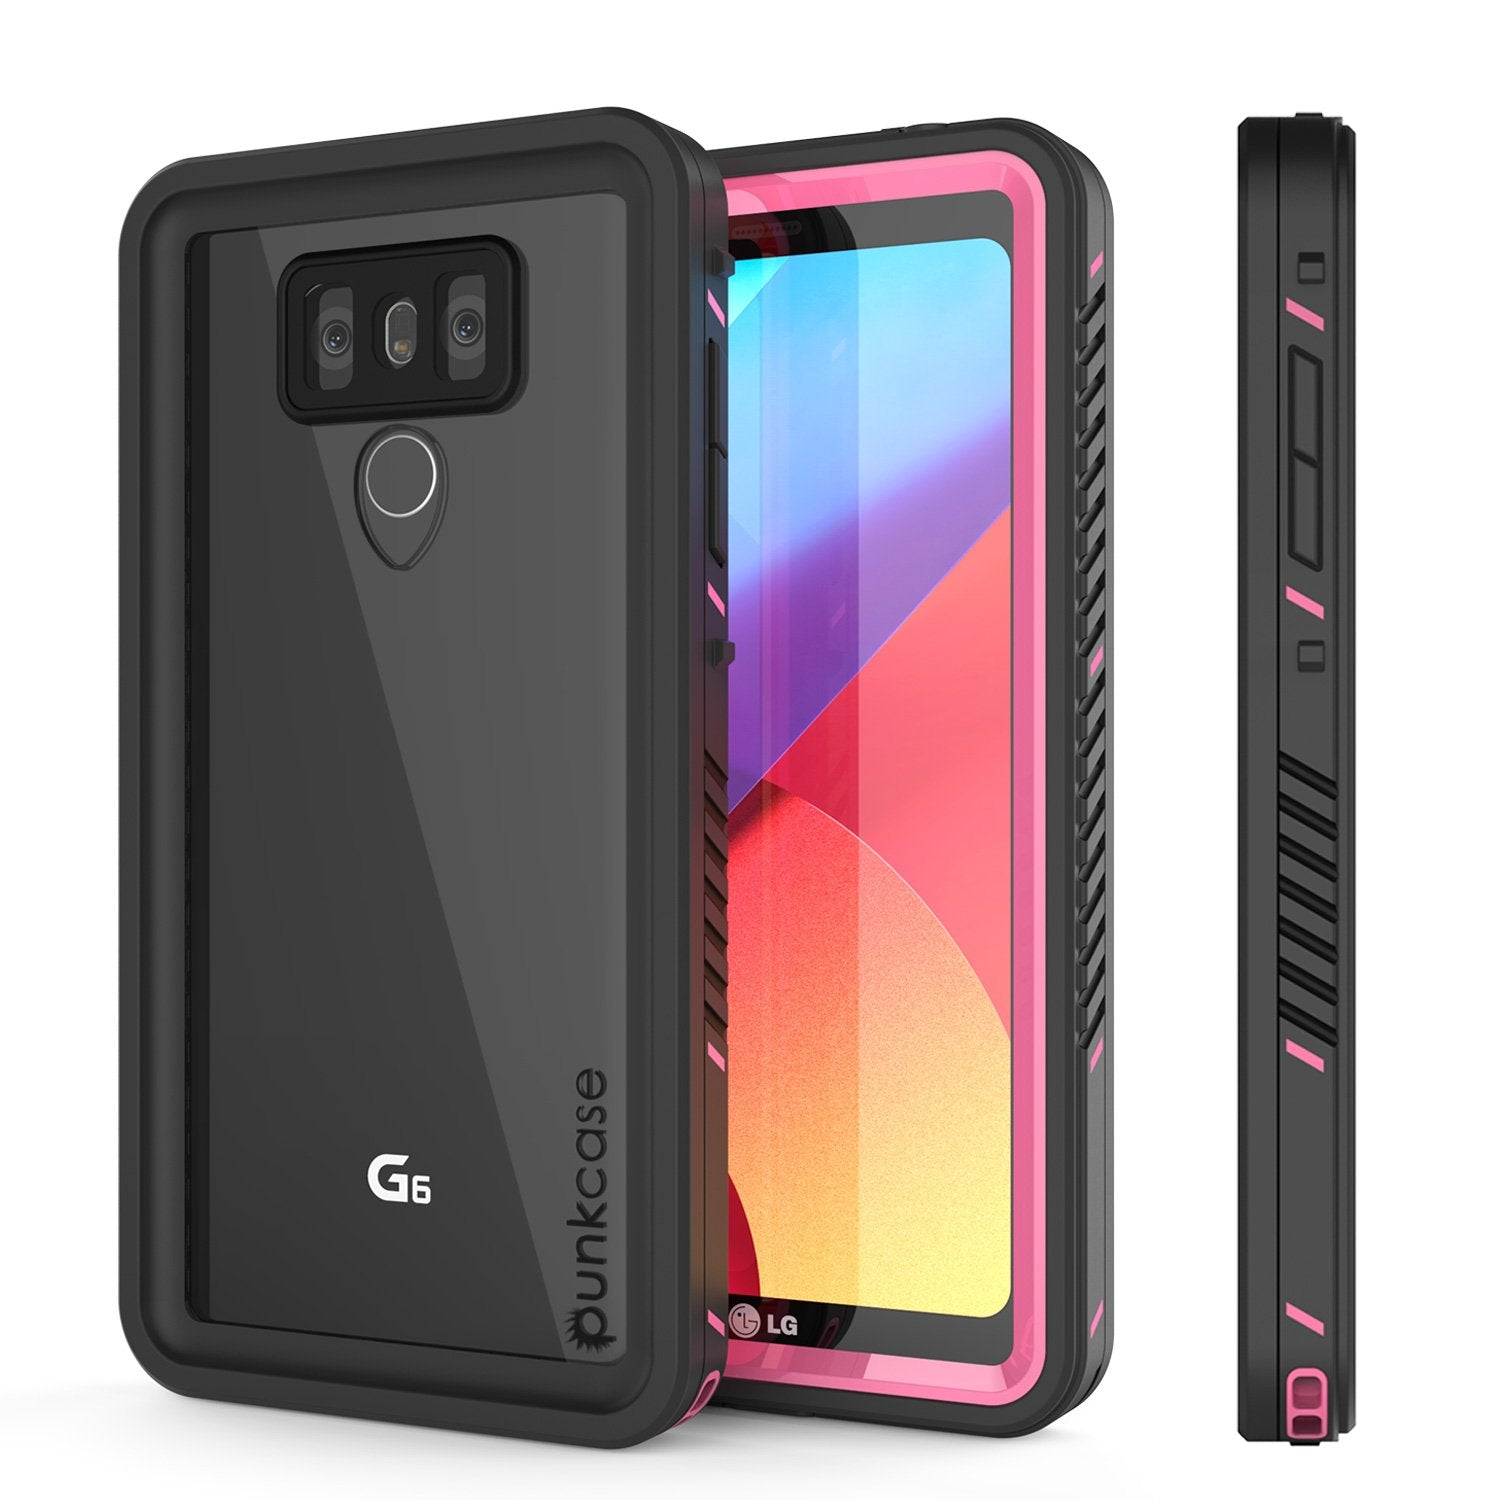 LG G6 Waterproof Case, Punkcase [Extreme Series] [Slim Fit] [IP68 Certified] [Shockproof] [Snowproof] [Dirproof] Armor Cover W/ Built In Screen Protector for LG G6 [PINK]